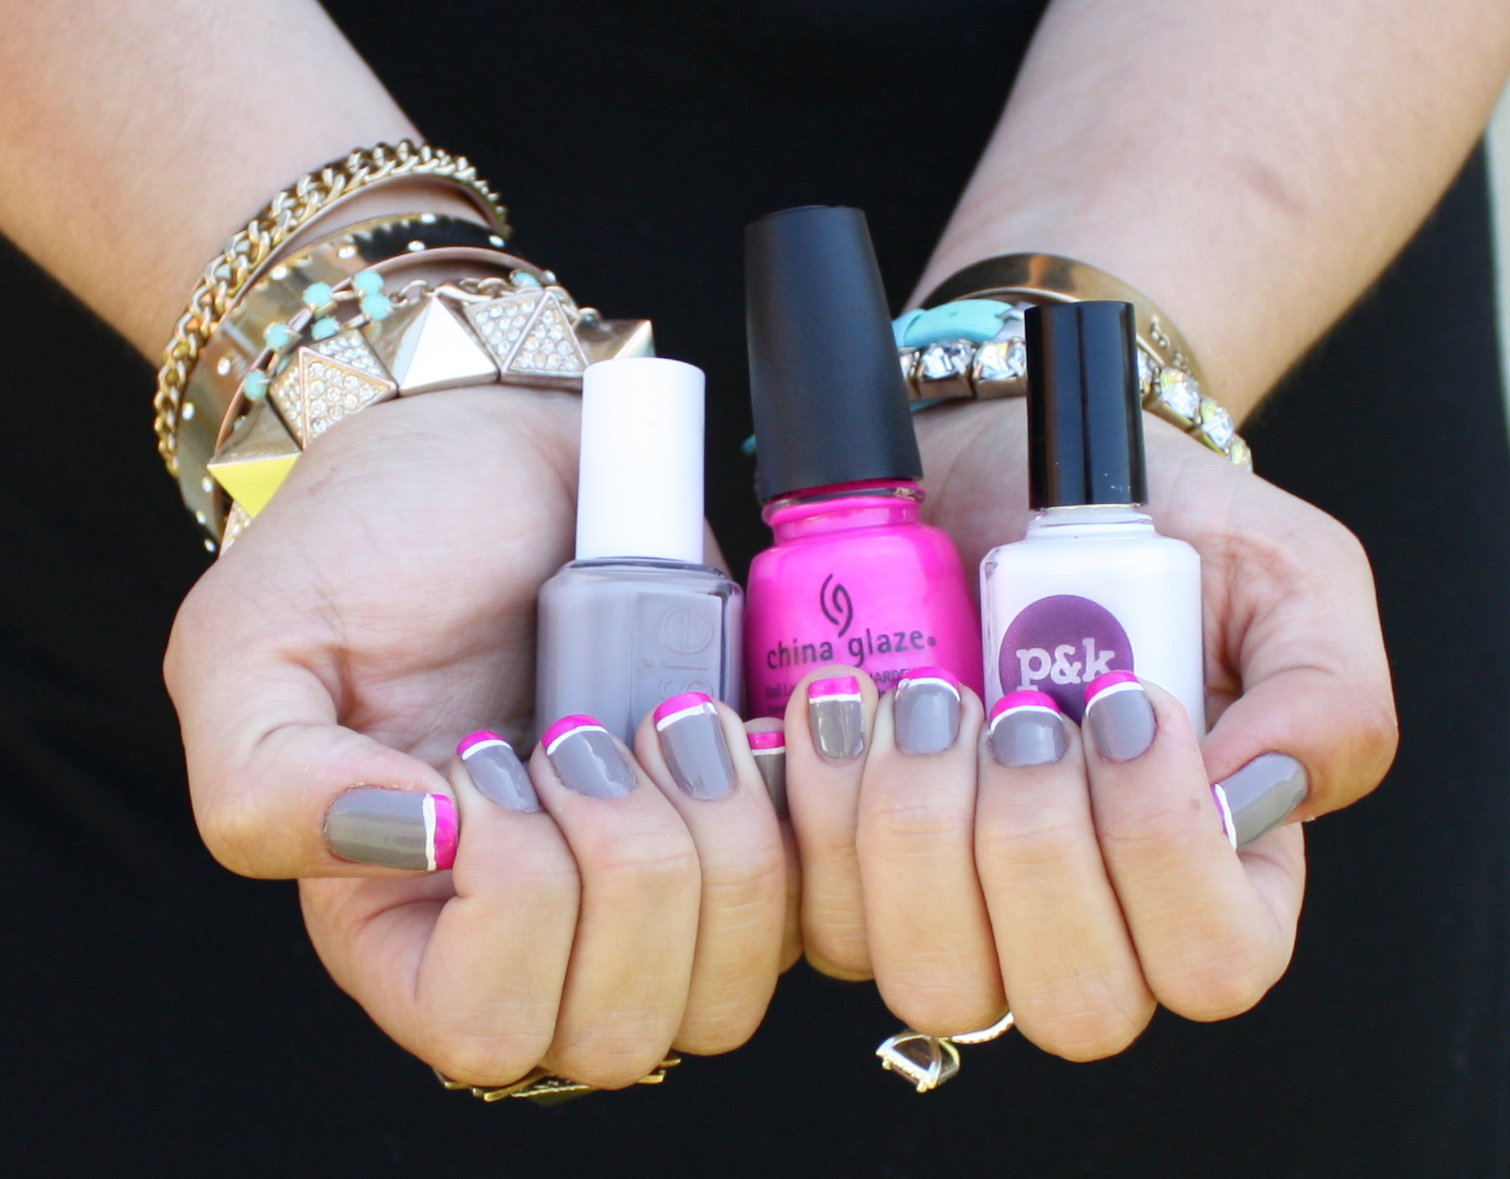 It\'s because I think too much: Purple Panic Manicure